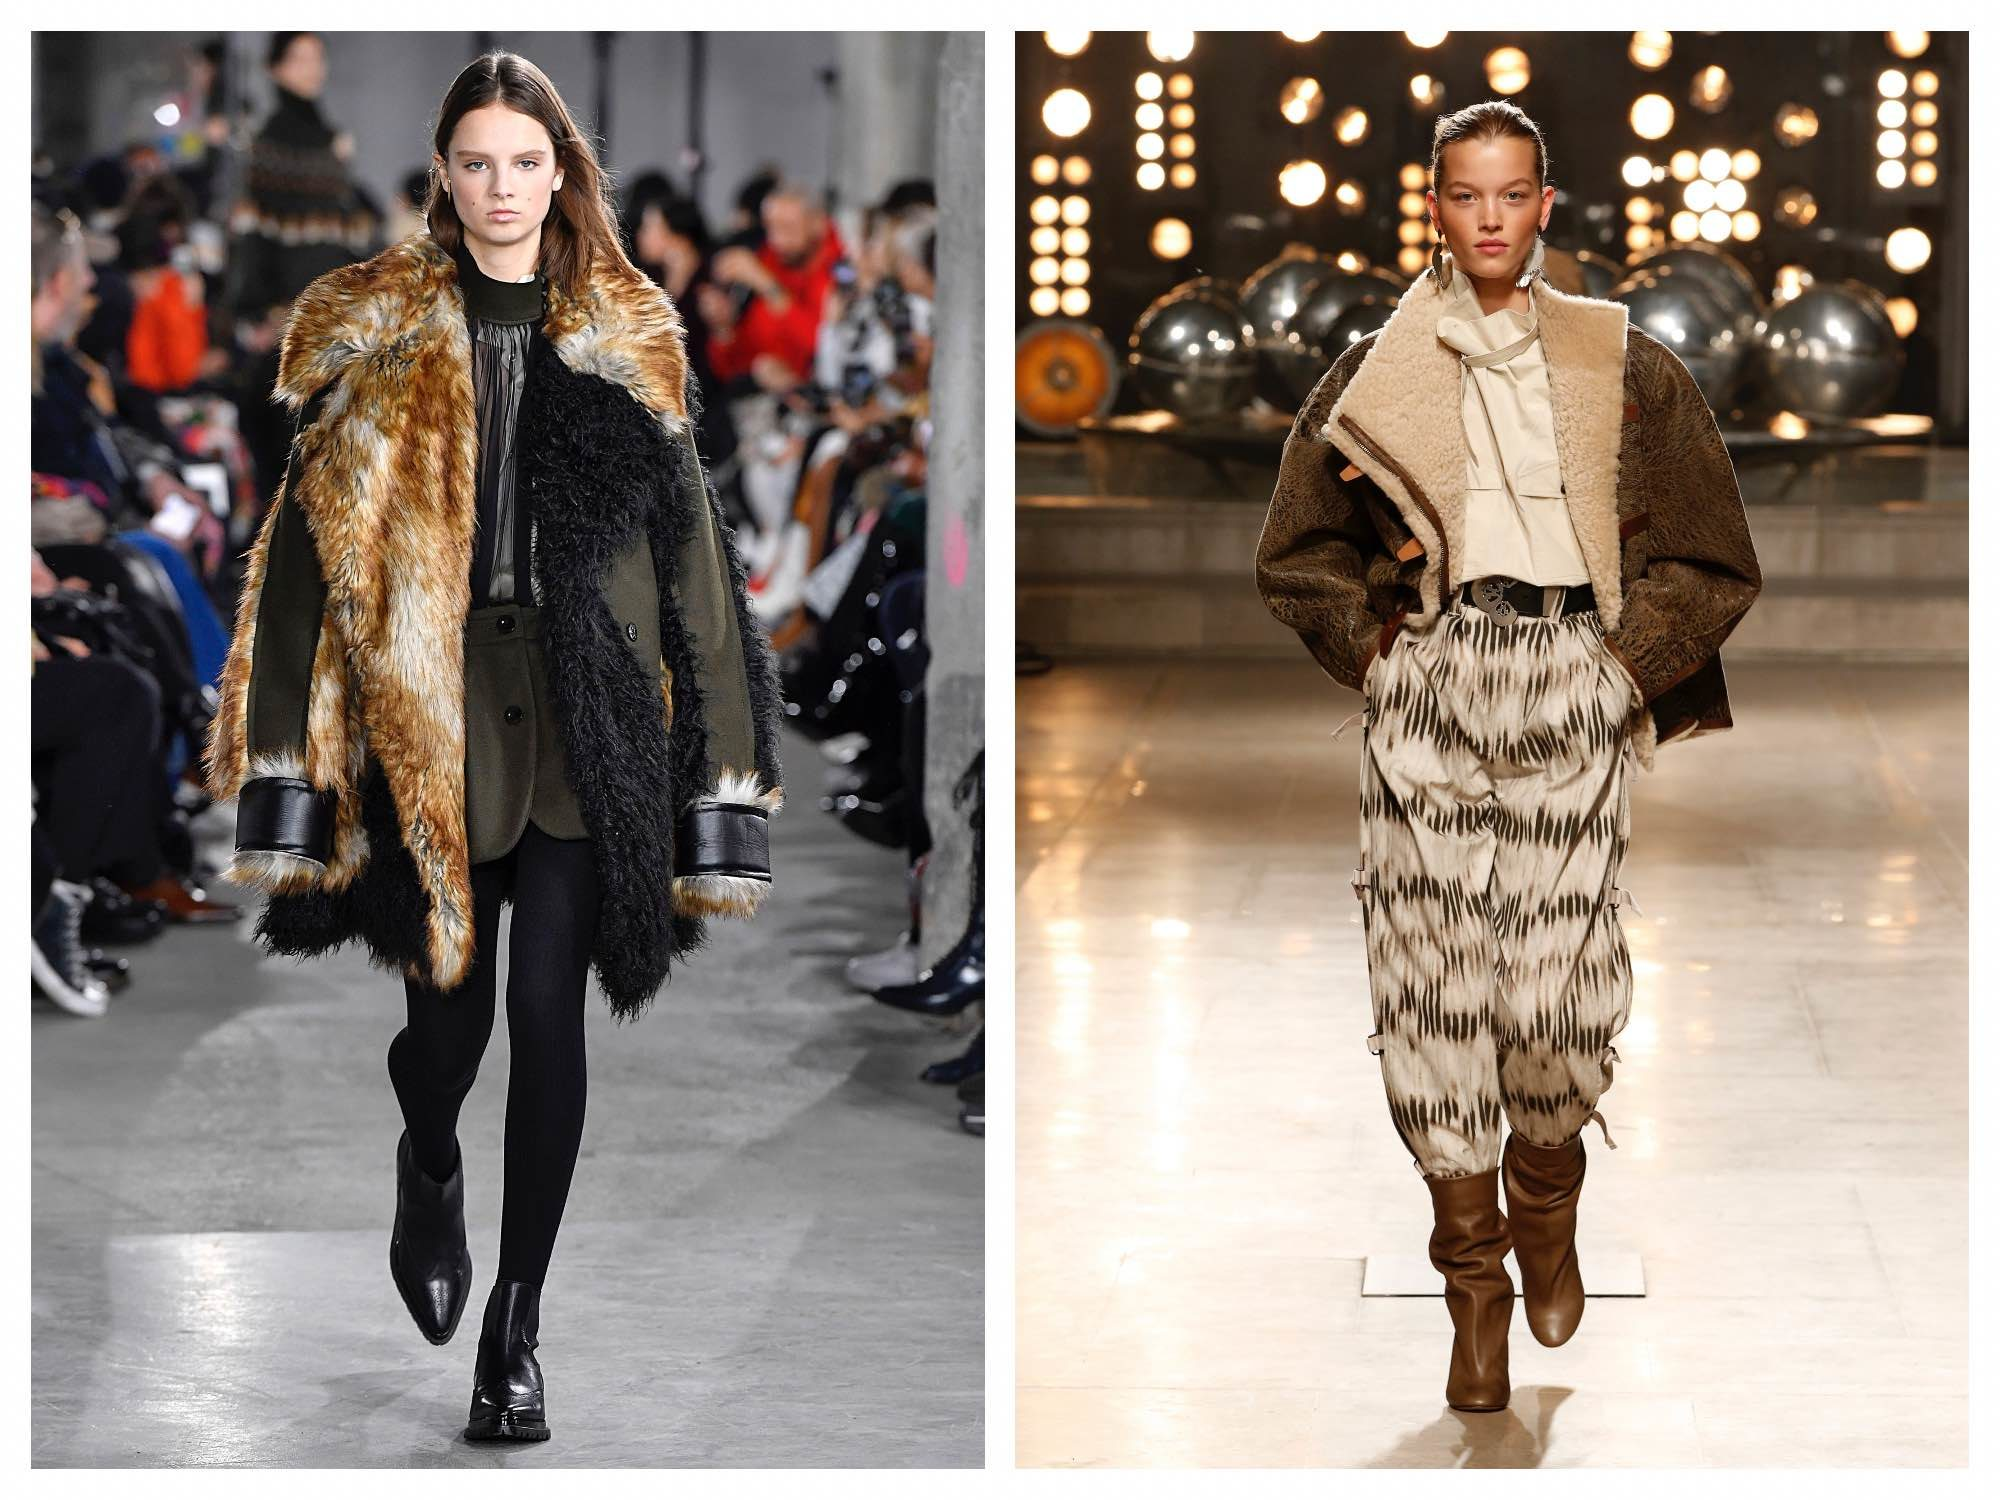 Parisian winter styles like fur coats by Sacai (left) and sheepskin by Isabel Marant (right) from Paris Fashion Week.